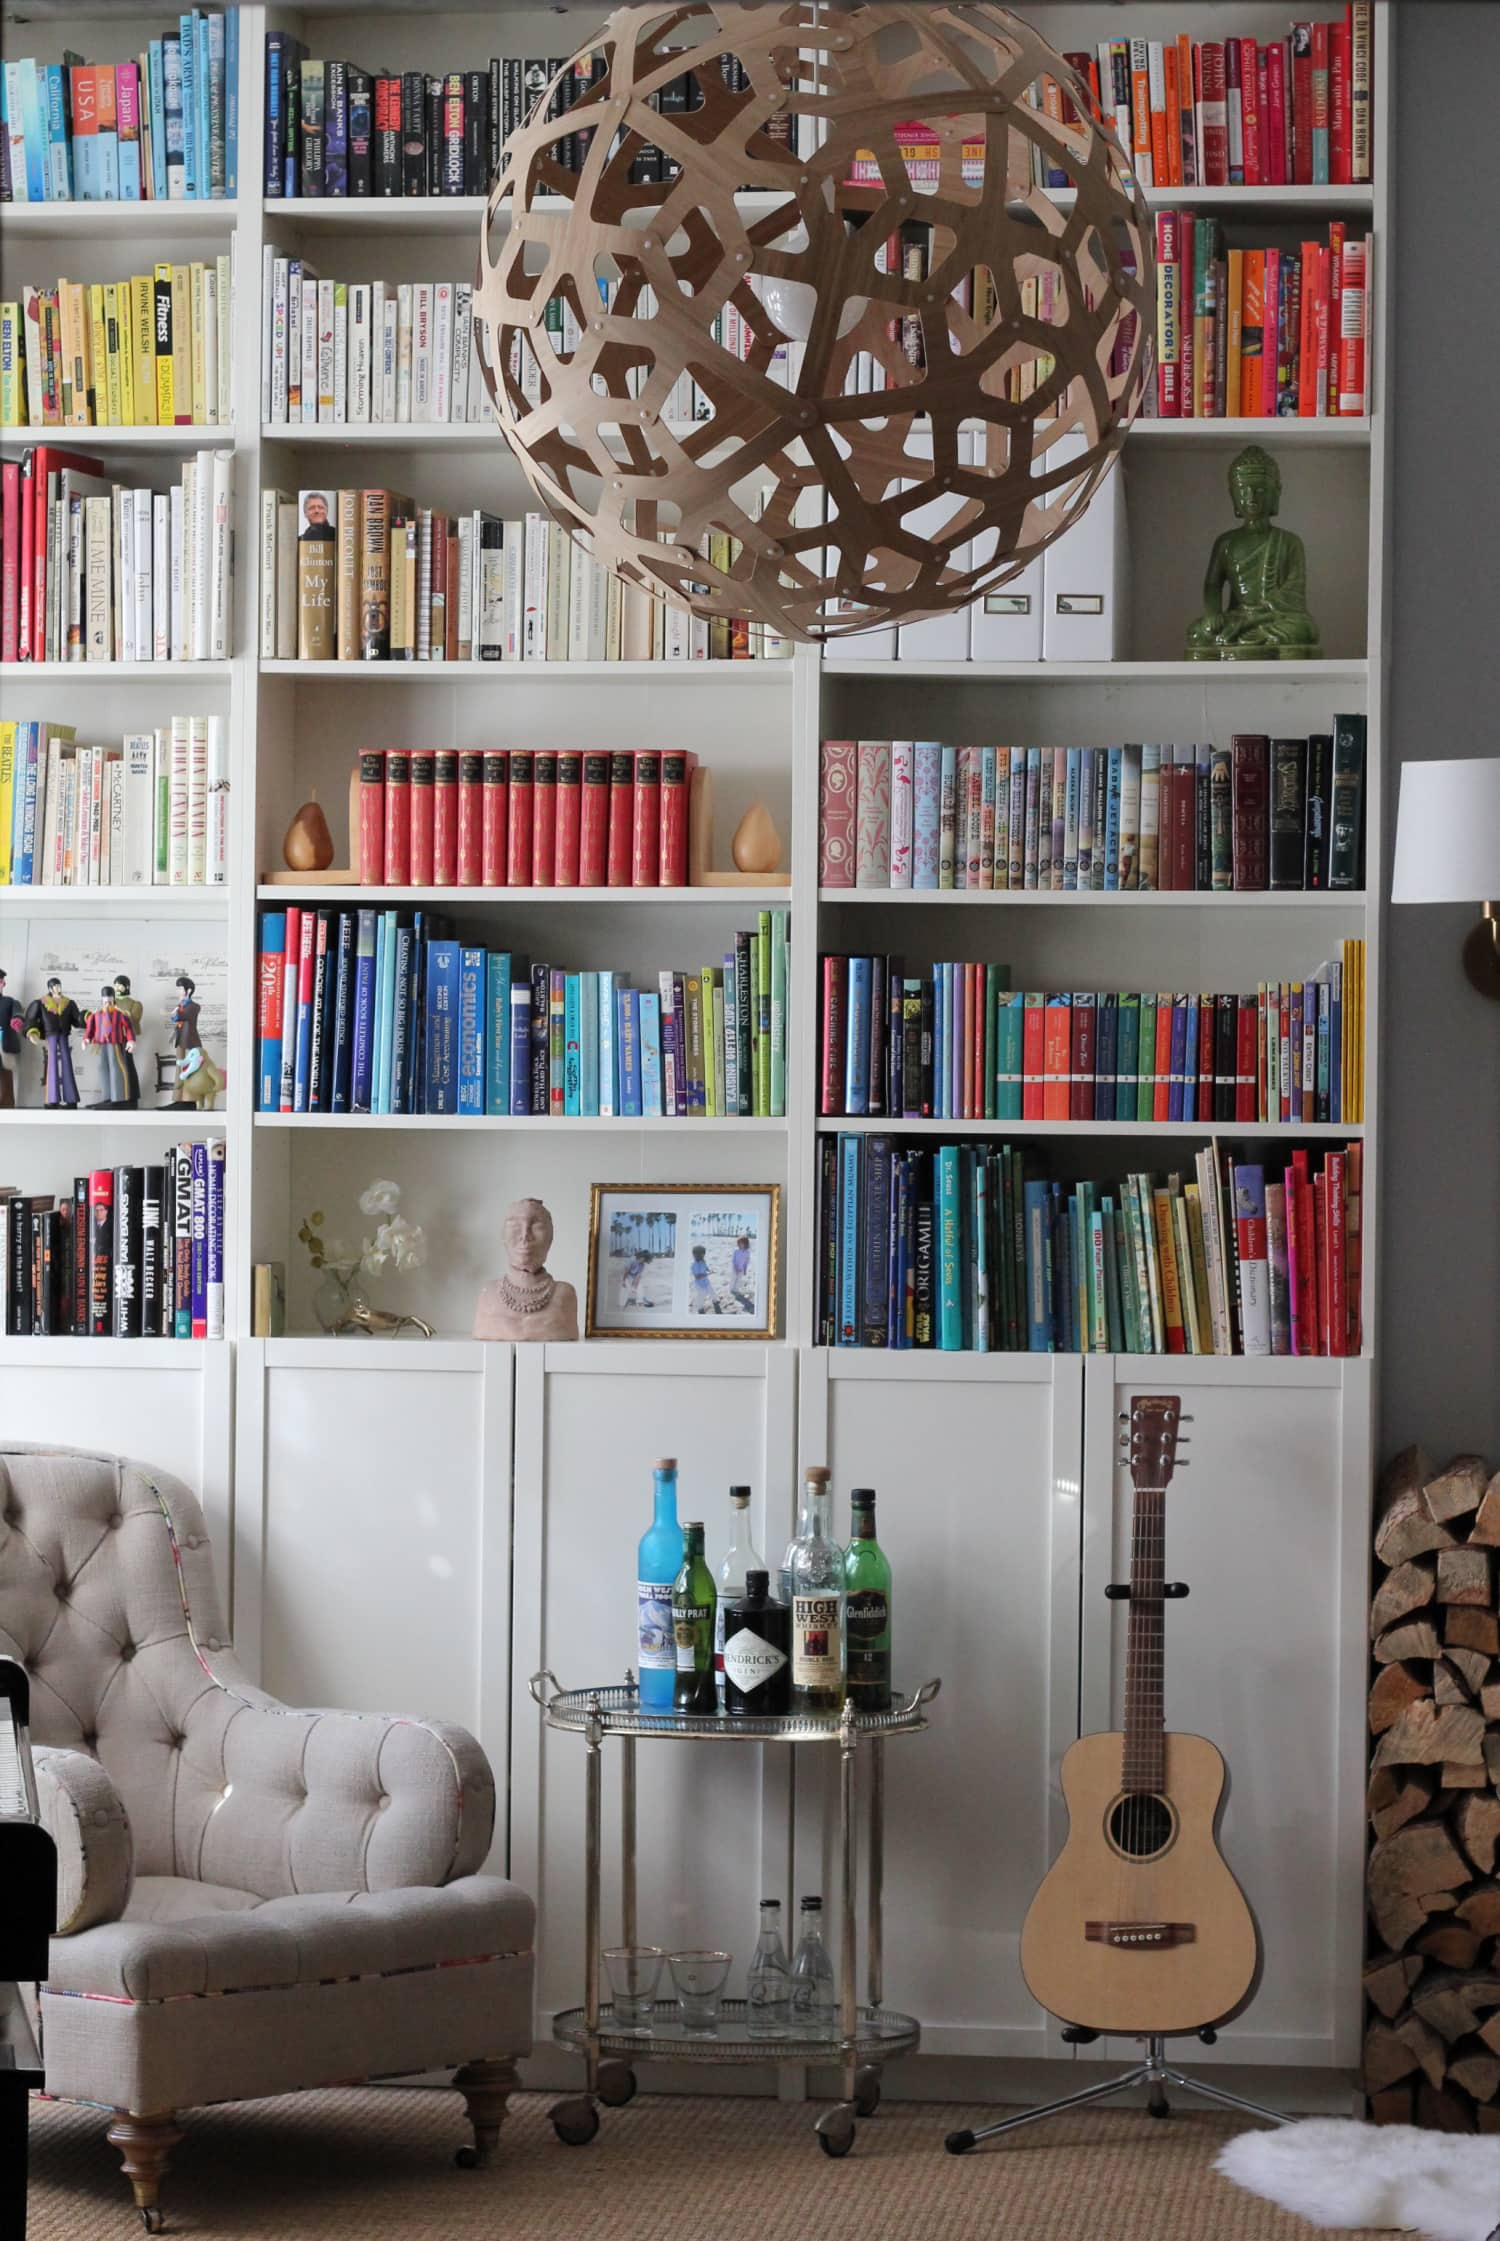 Beautifully Organized: Home Libraries of All Sizes